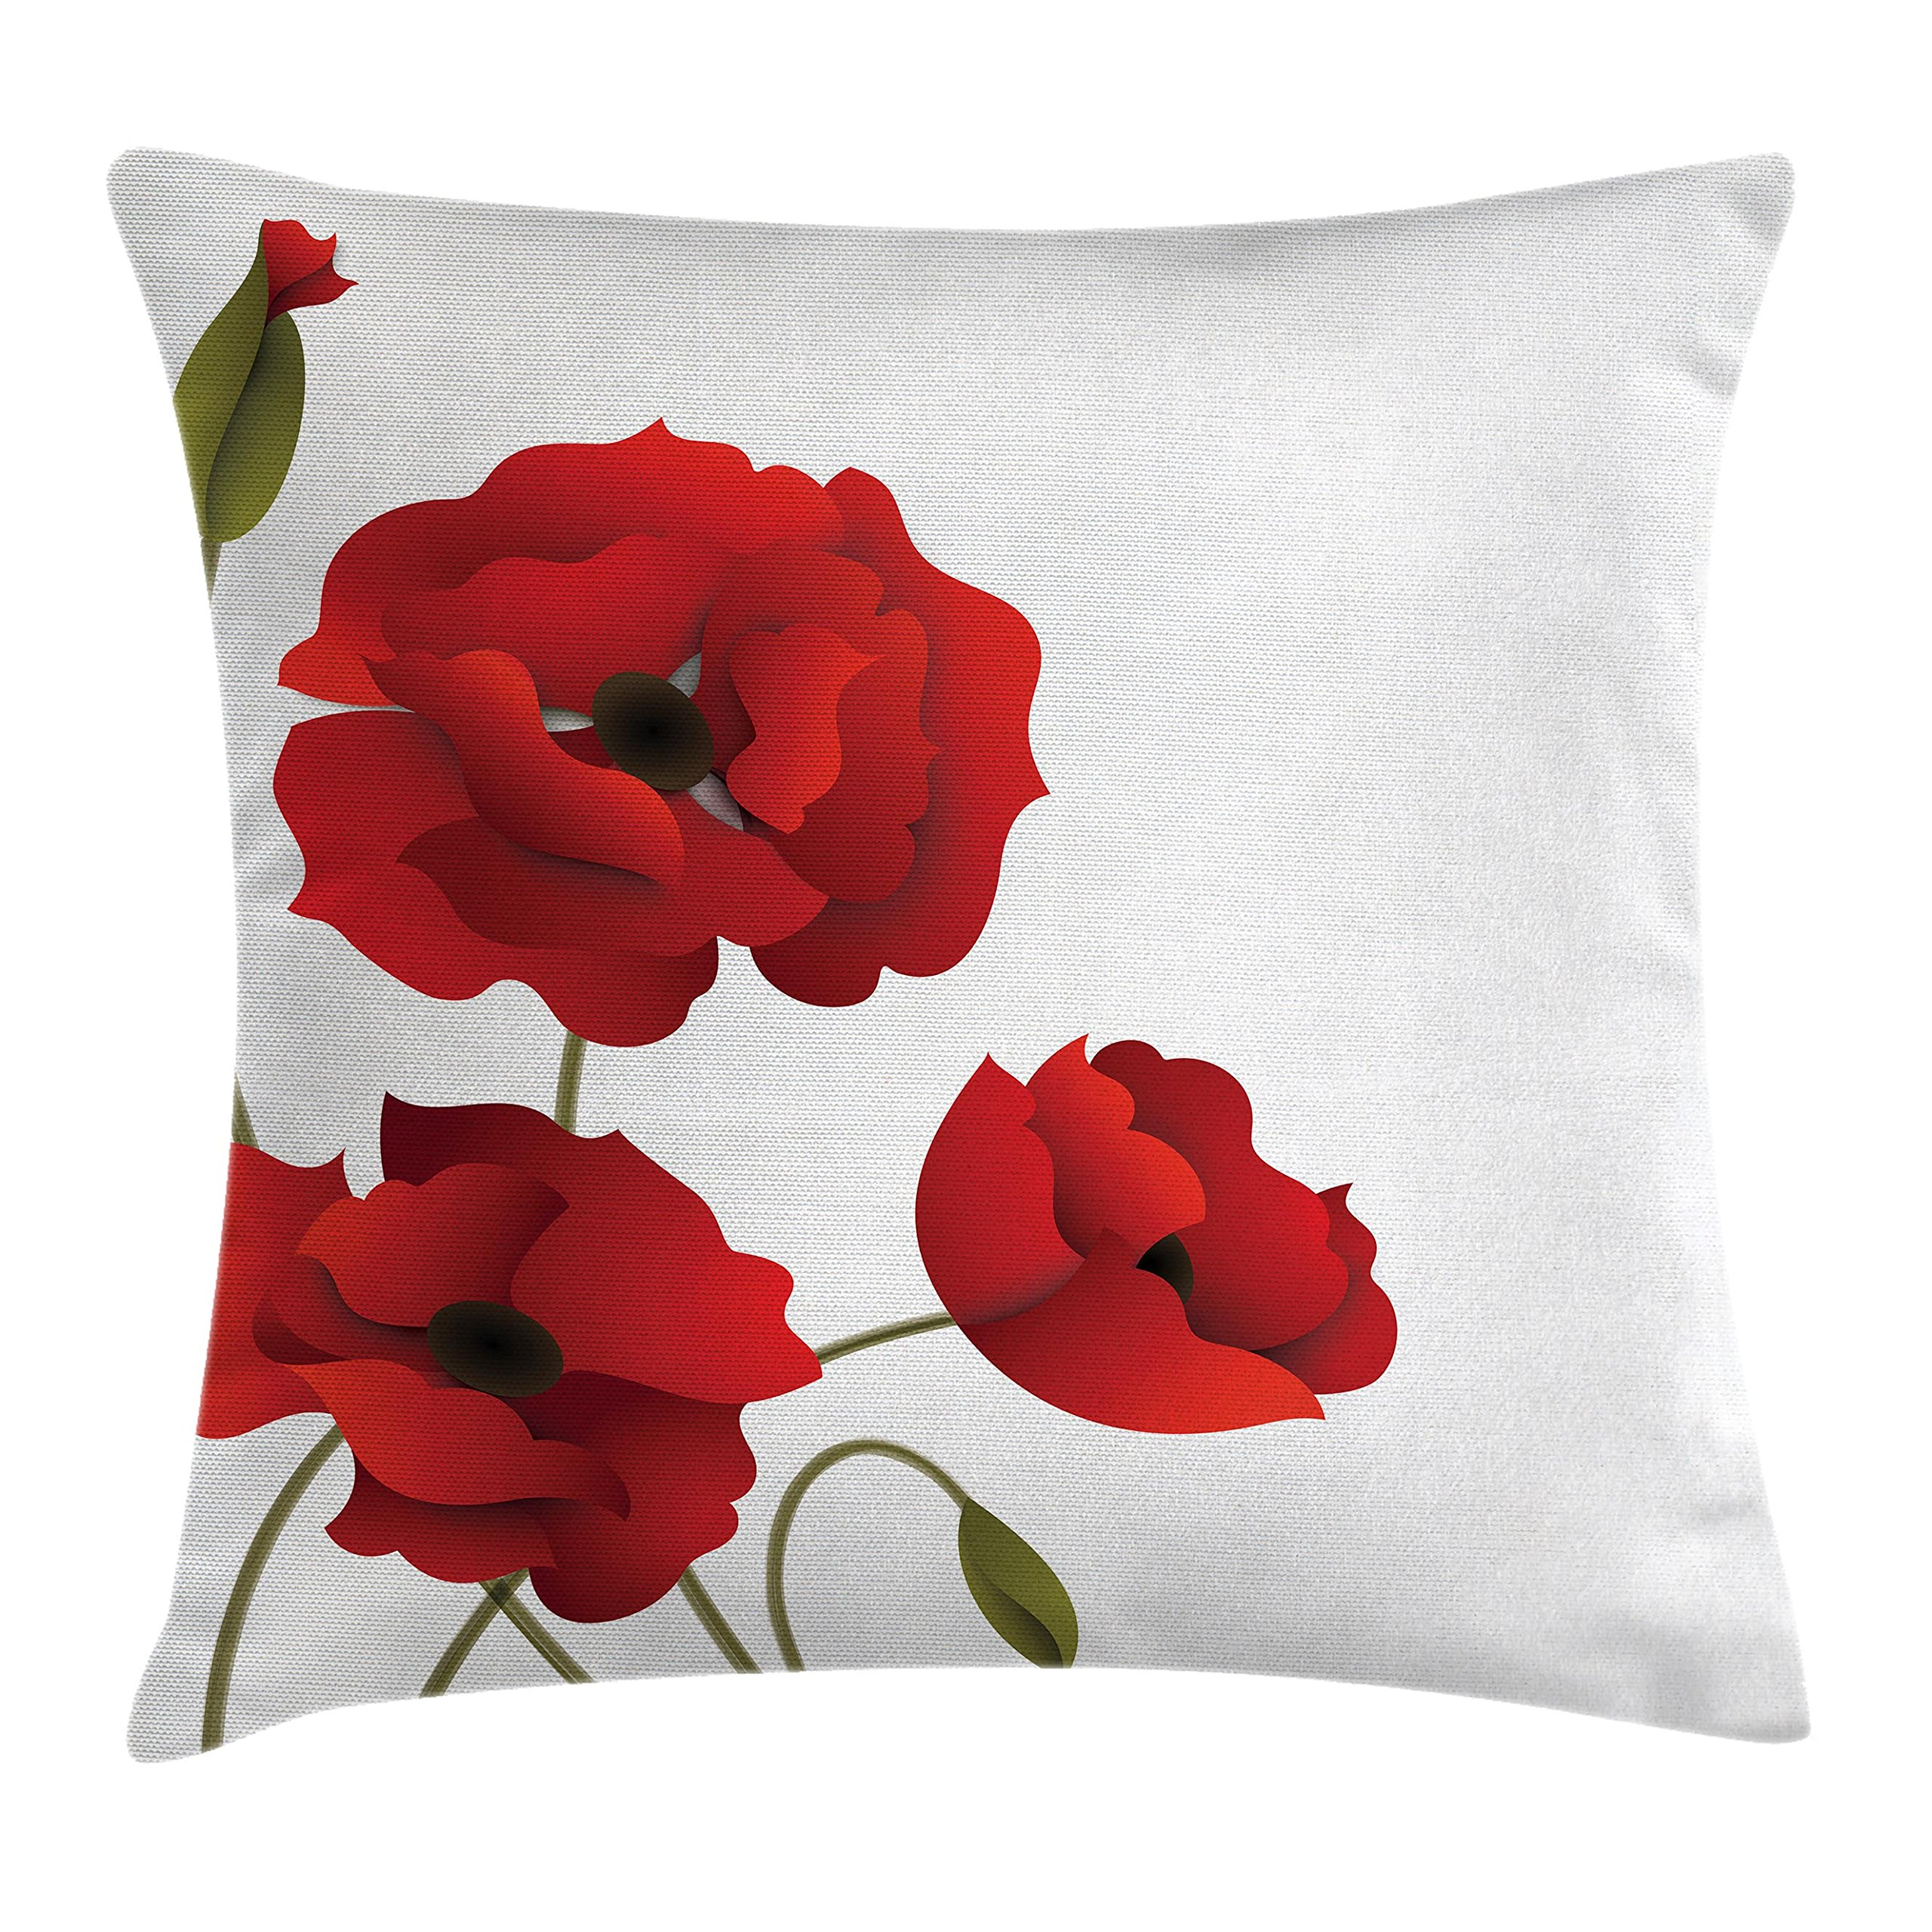 Ambesonne Floral Throw Pillow Cushion Cover, Poppy Flowers Vivid Petals with Buds Pastoral Purity Mother Earth Nature Design, Decorative Square Accent Pillow Case, 16'' X 16'', Red Green